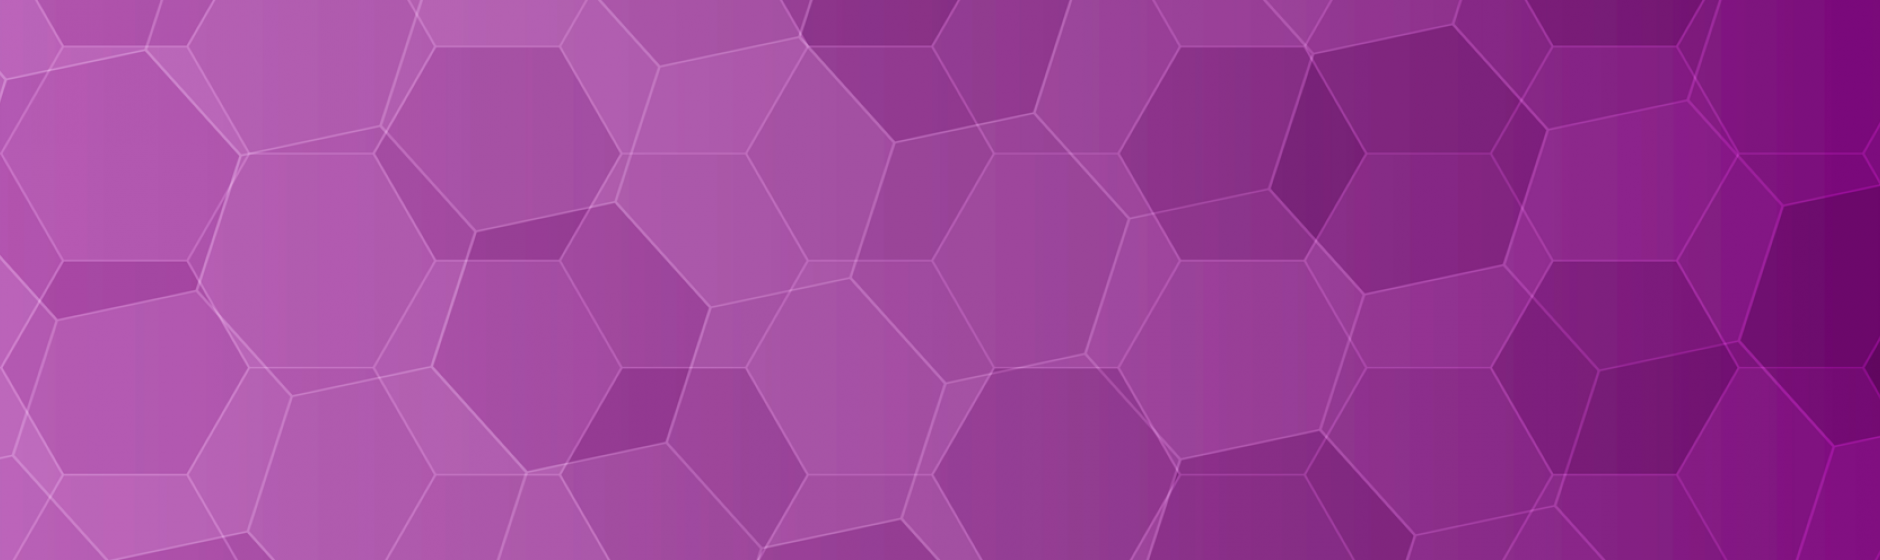 Purple Hexagons